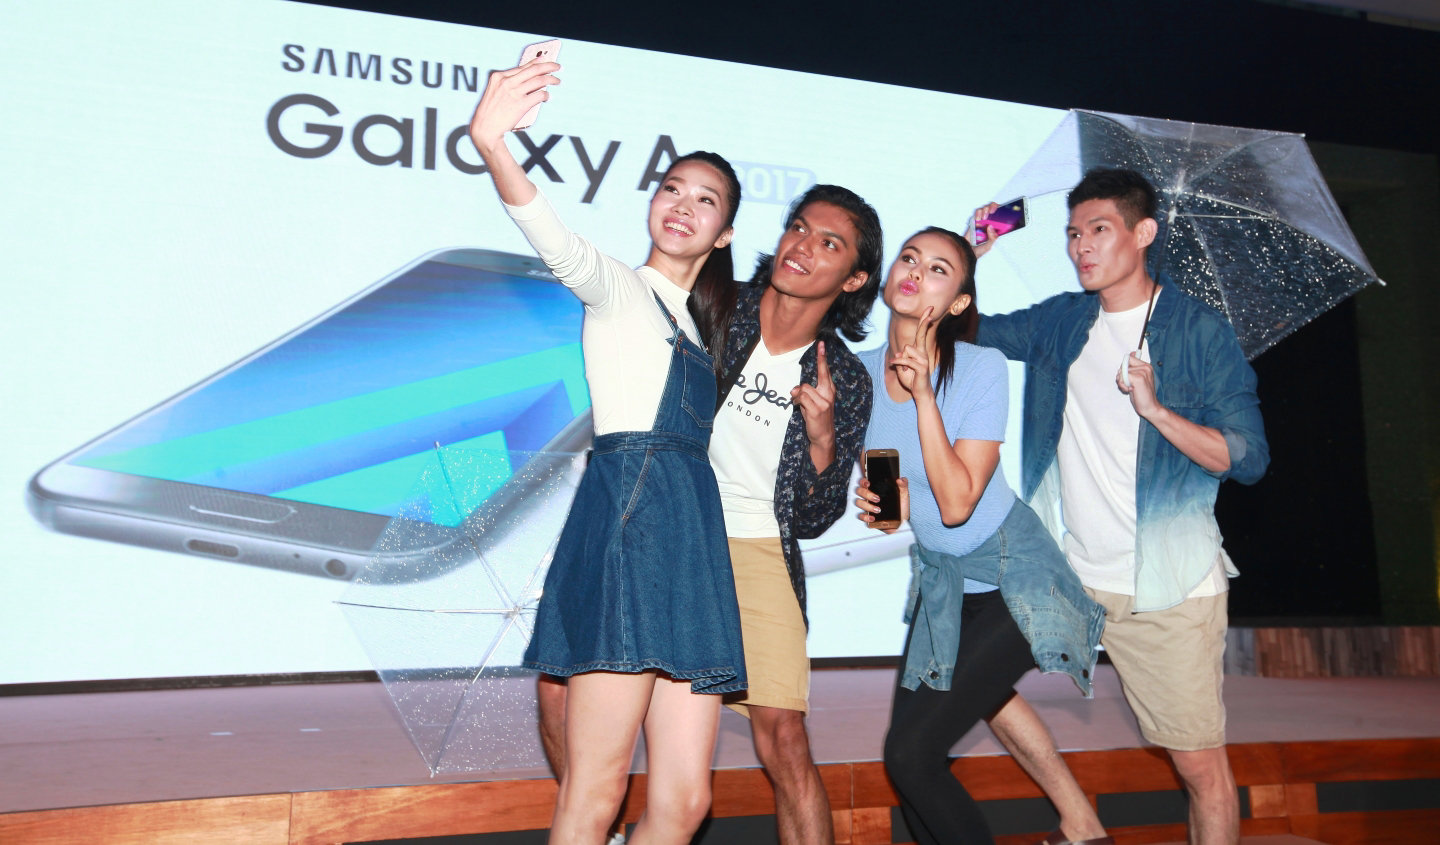 Live Unplanned with the New Samsung Galaxy A Series (2017)